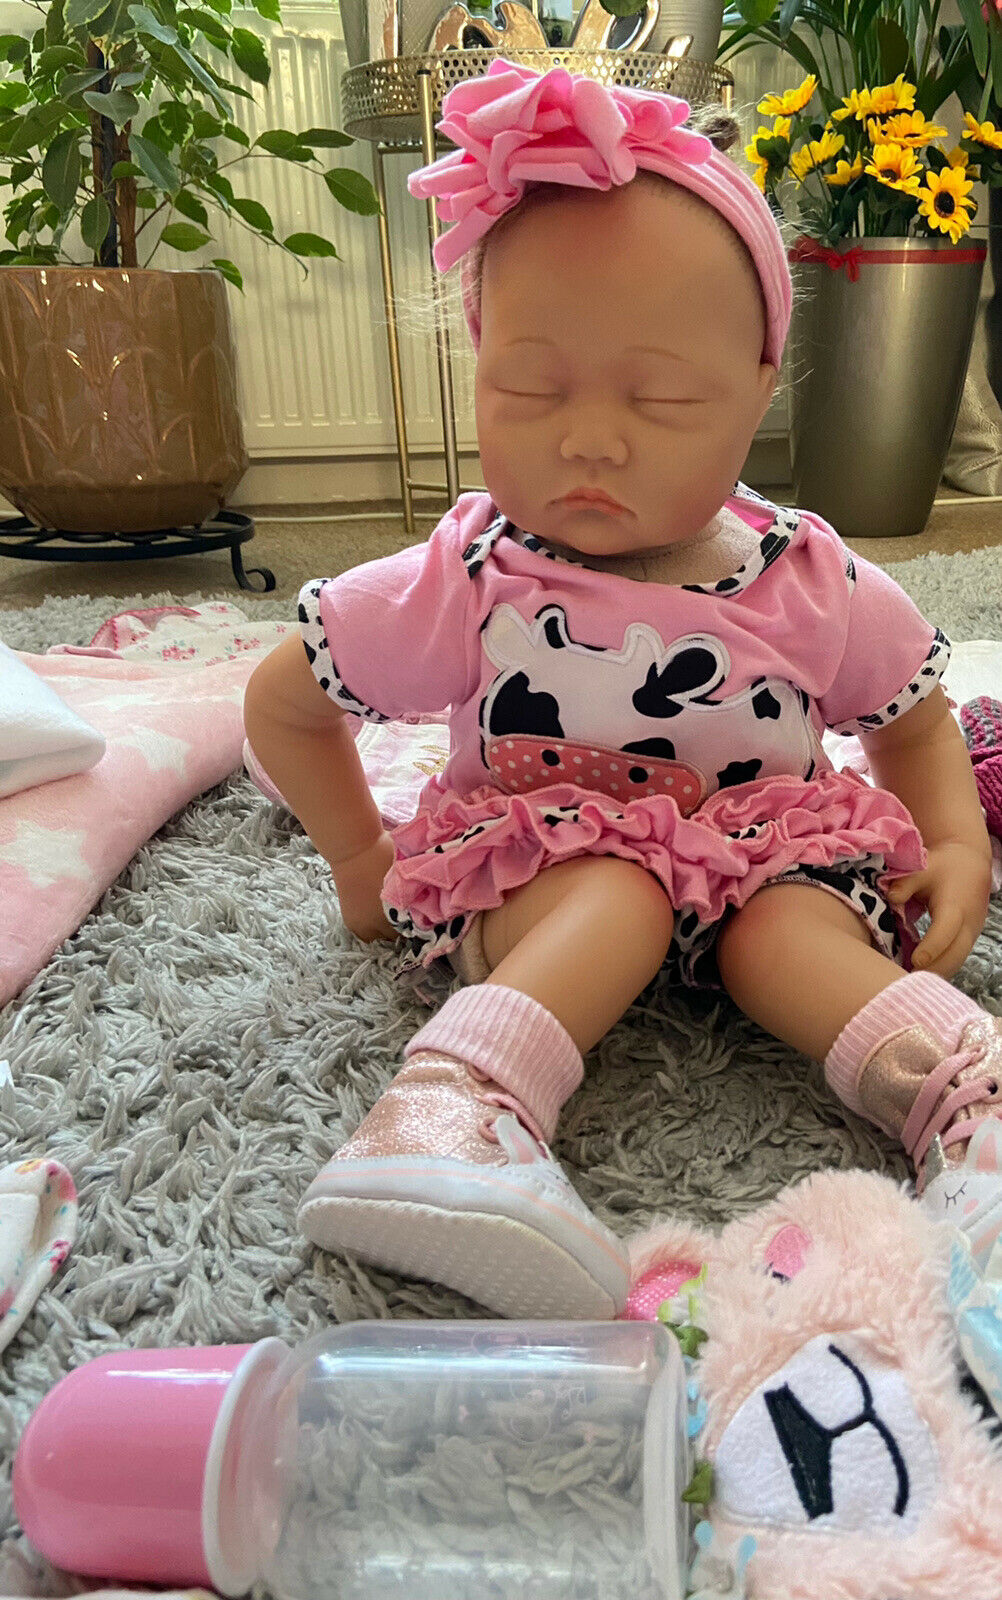 Yesteria 20 Inches Sleeping Realistic Baby Dolls With Accessories